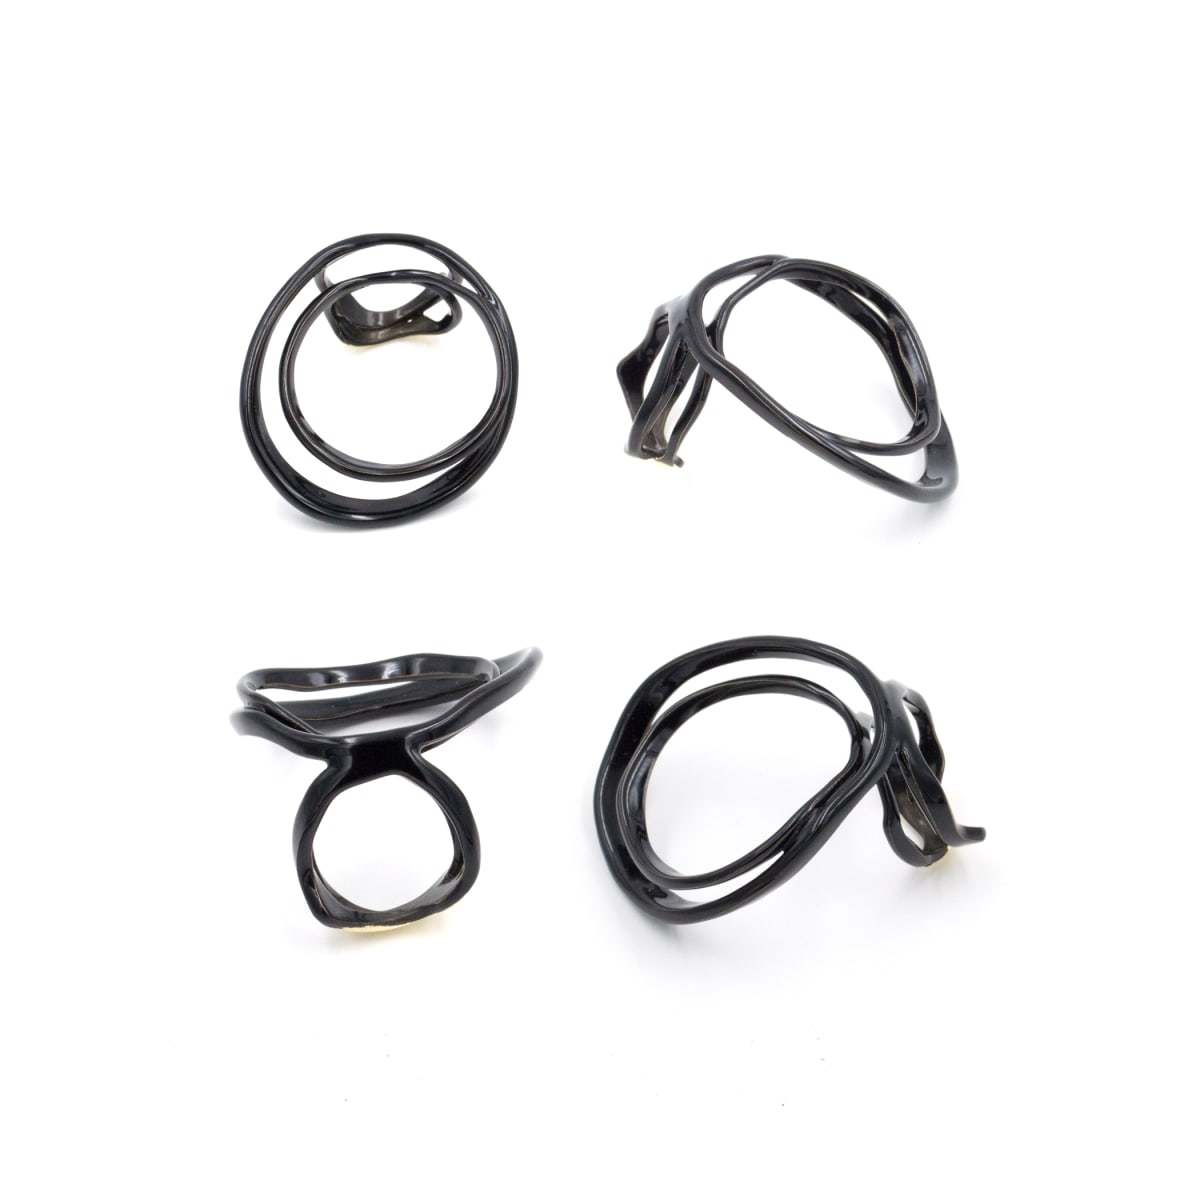 Laura Wood, Open Weave Ring Double